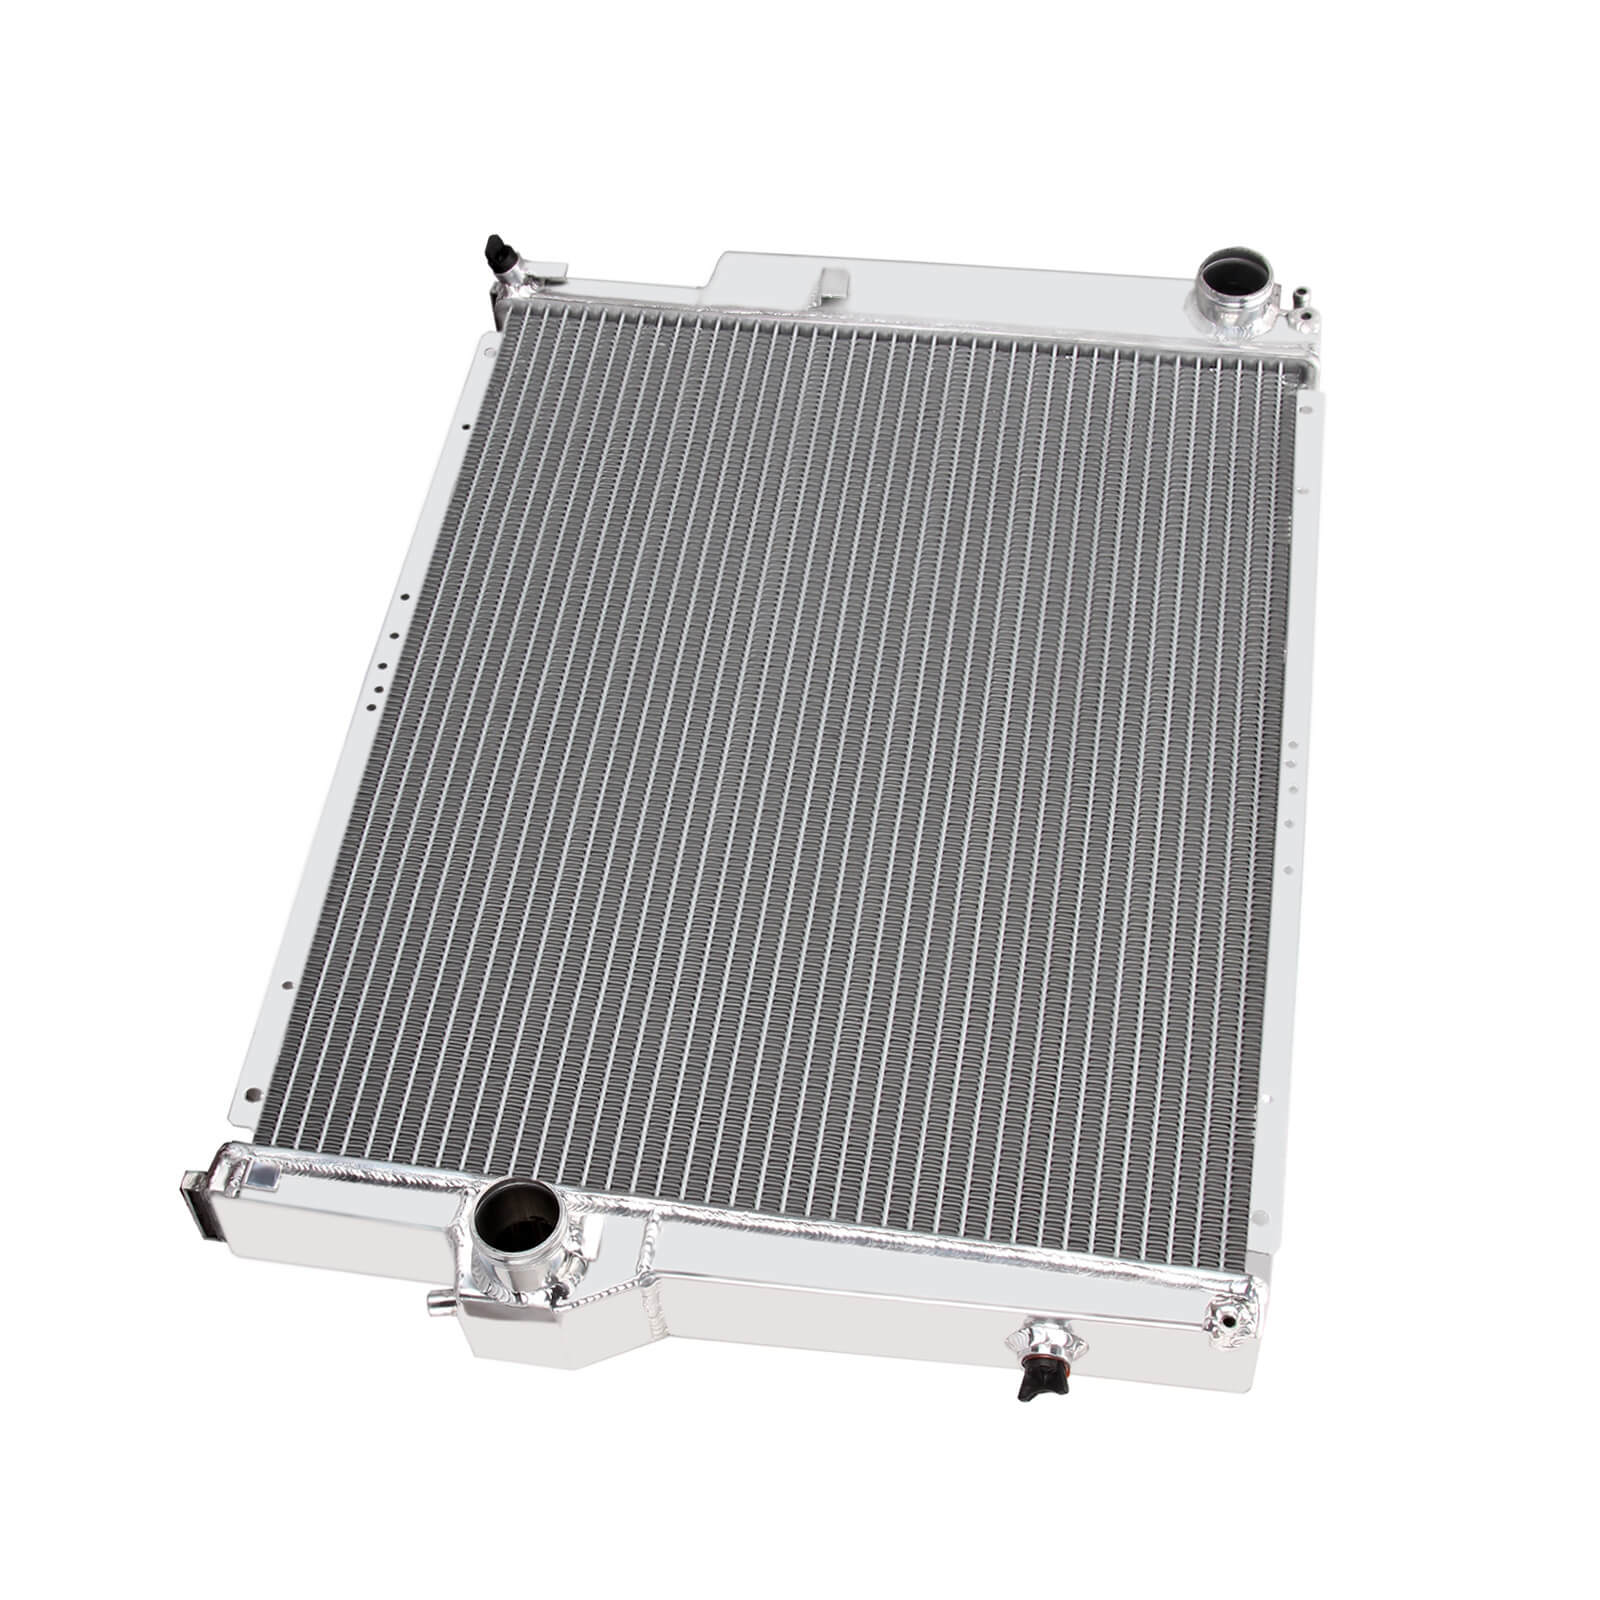 Dromedary-Best 1841 Full Aluminum Racing Radiator For Bmw M3 325 E32 1992-2000 Mt-2